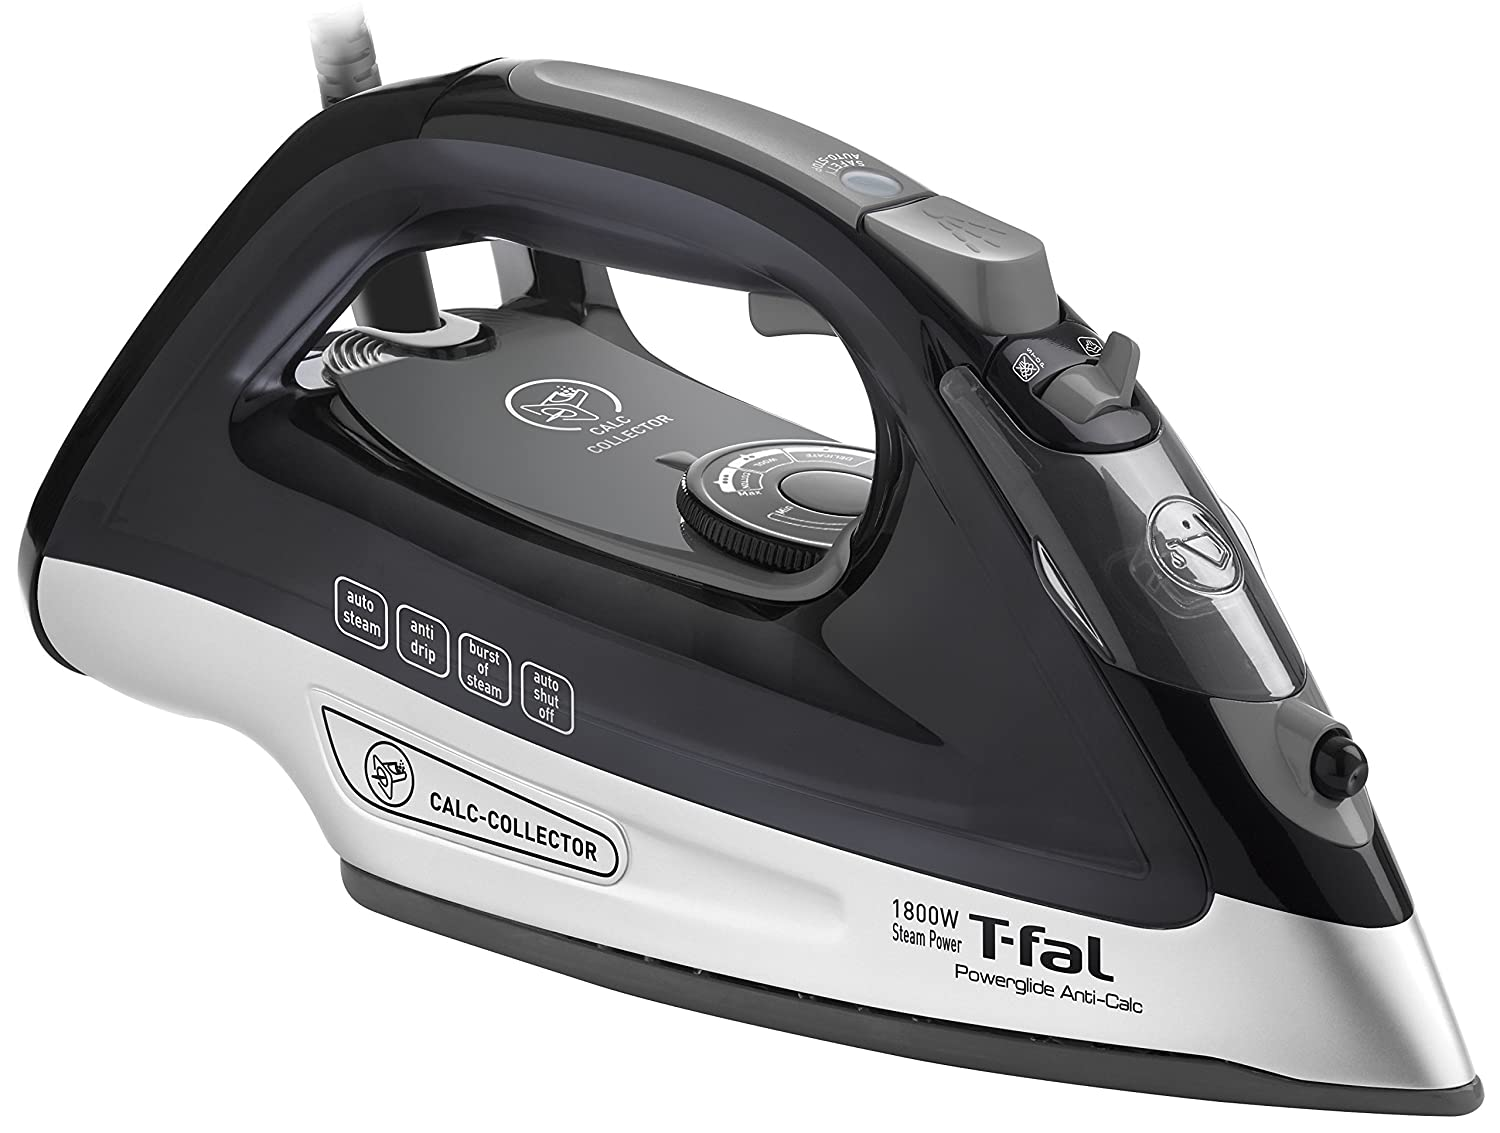 T-fal FV2640U0 Powerglide Anticalc Non-Stick and Scratch Resistant Durilium Ceramic Soleplate Steam Iron with Anti-Drip and Auto-off System, 1800-Watt, Black